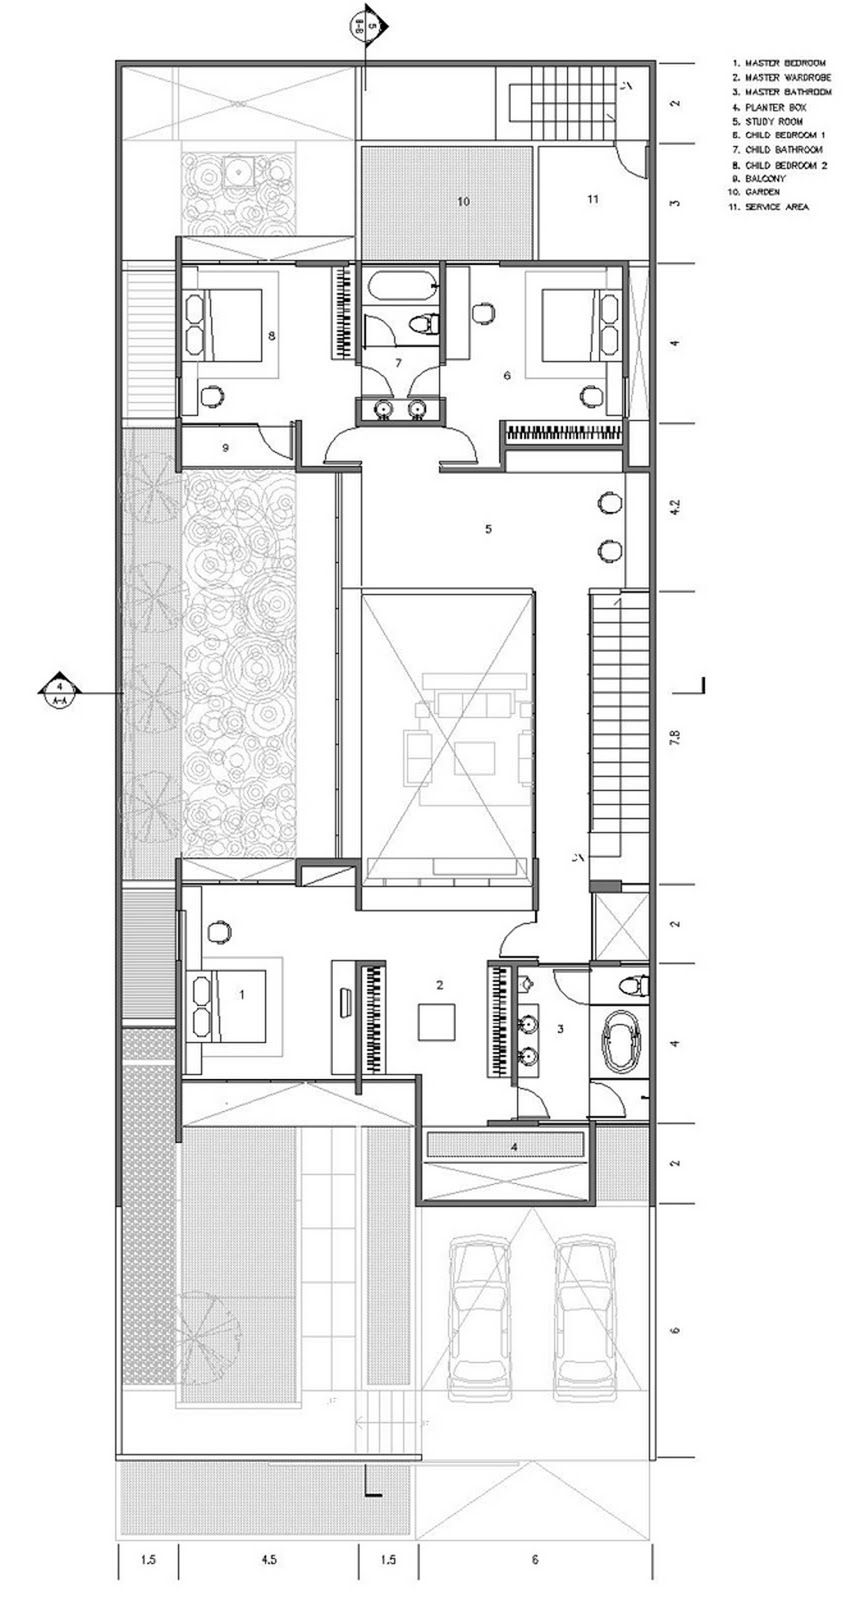 Farnsworth house floor plans floor plans for Farnsworth house floor plan